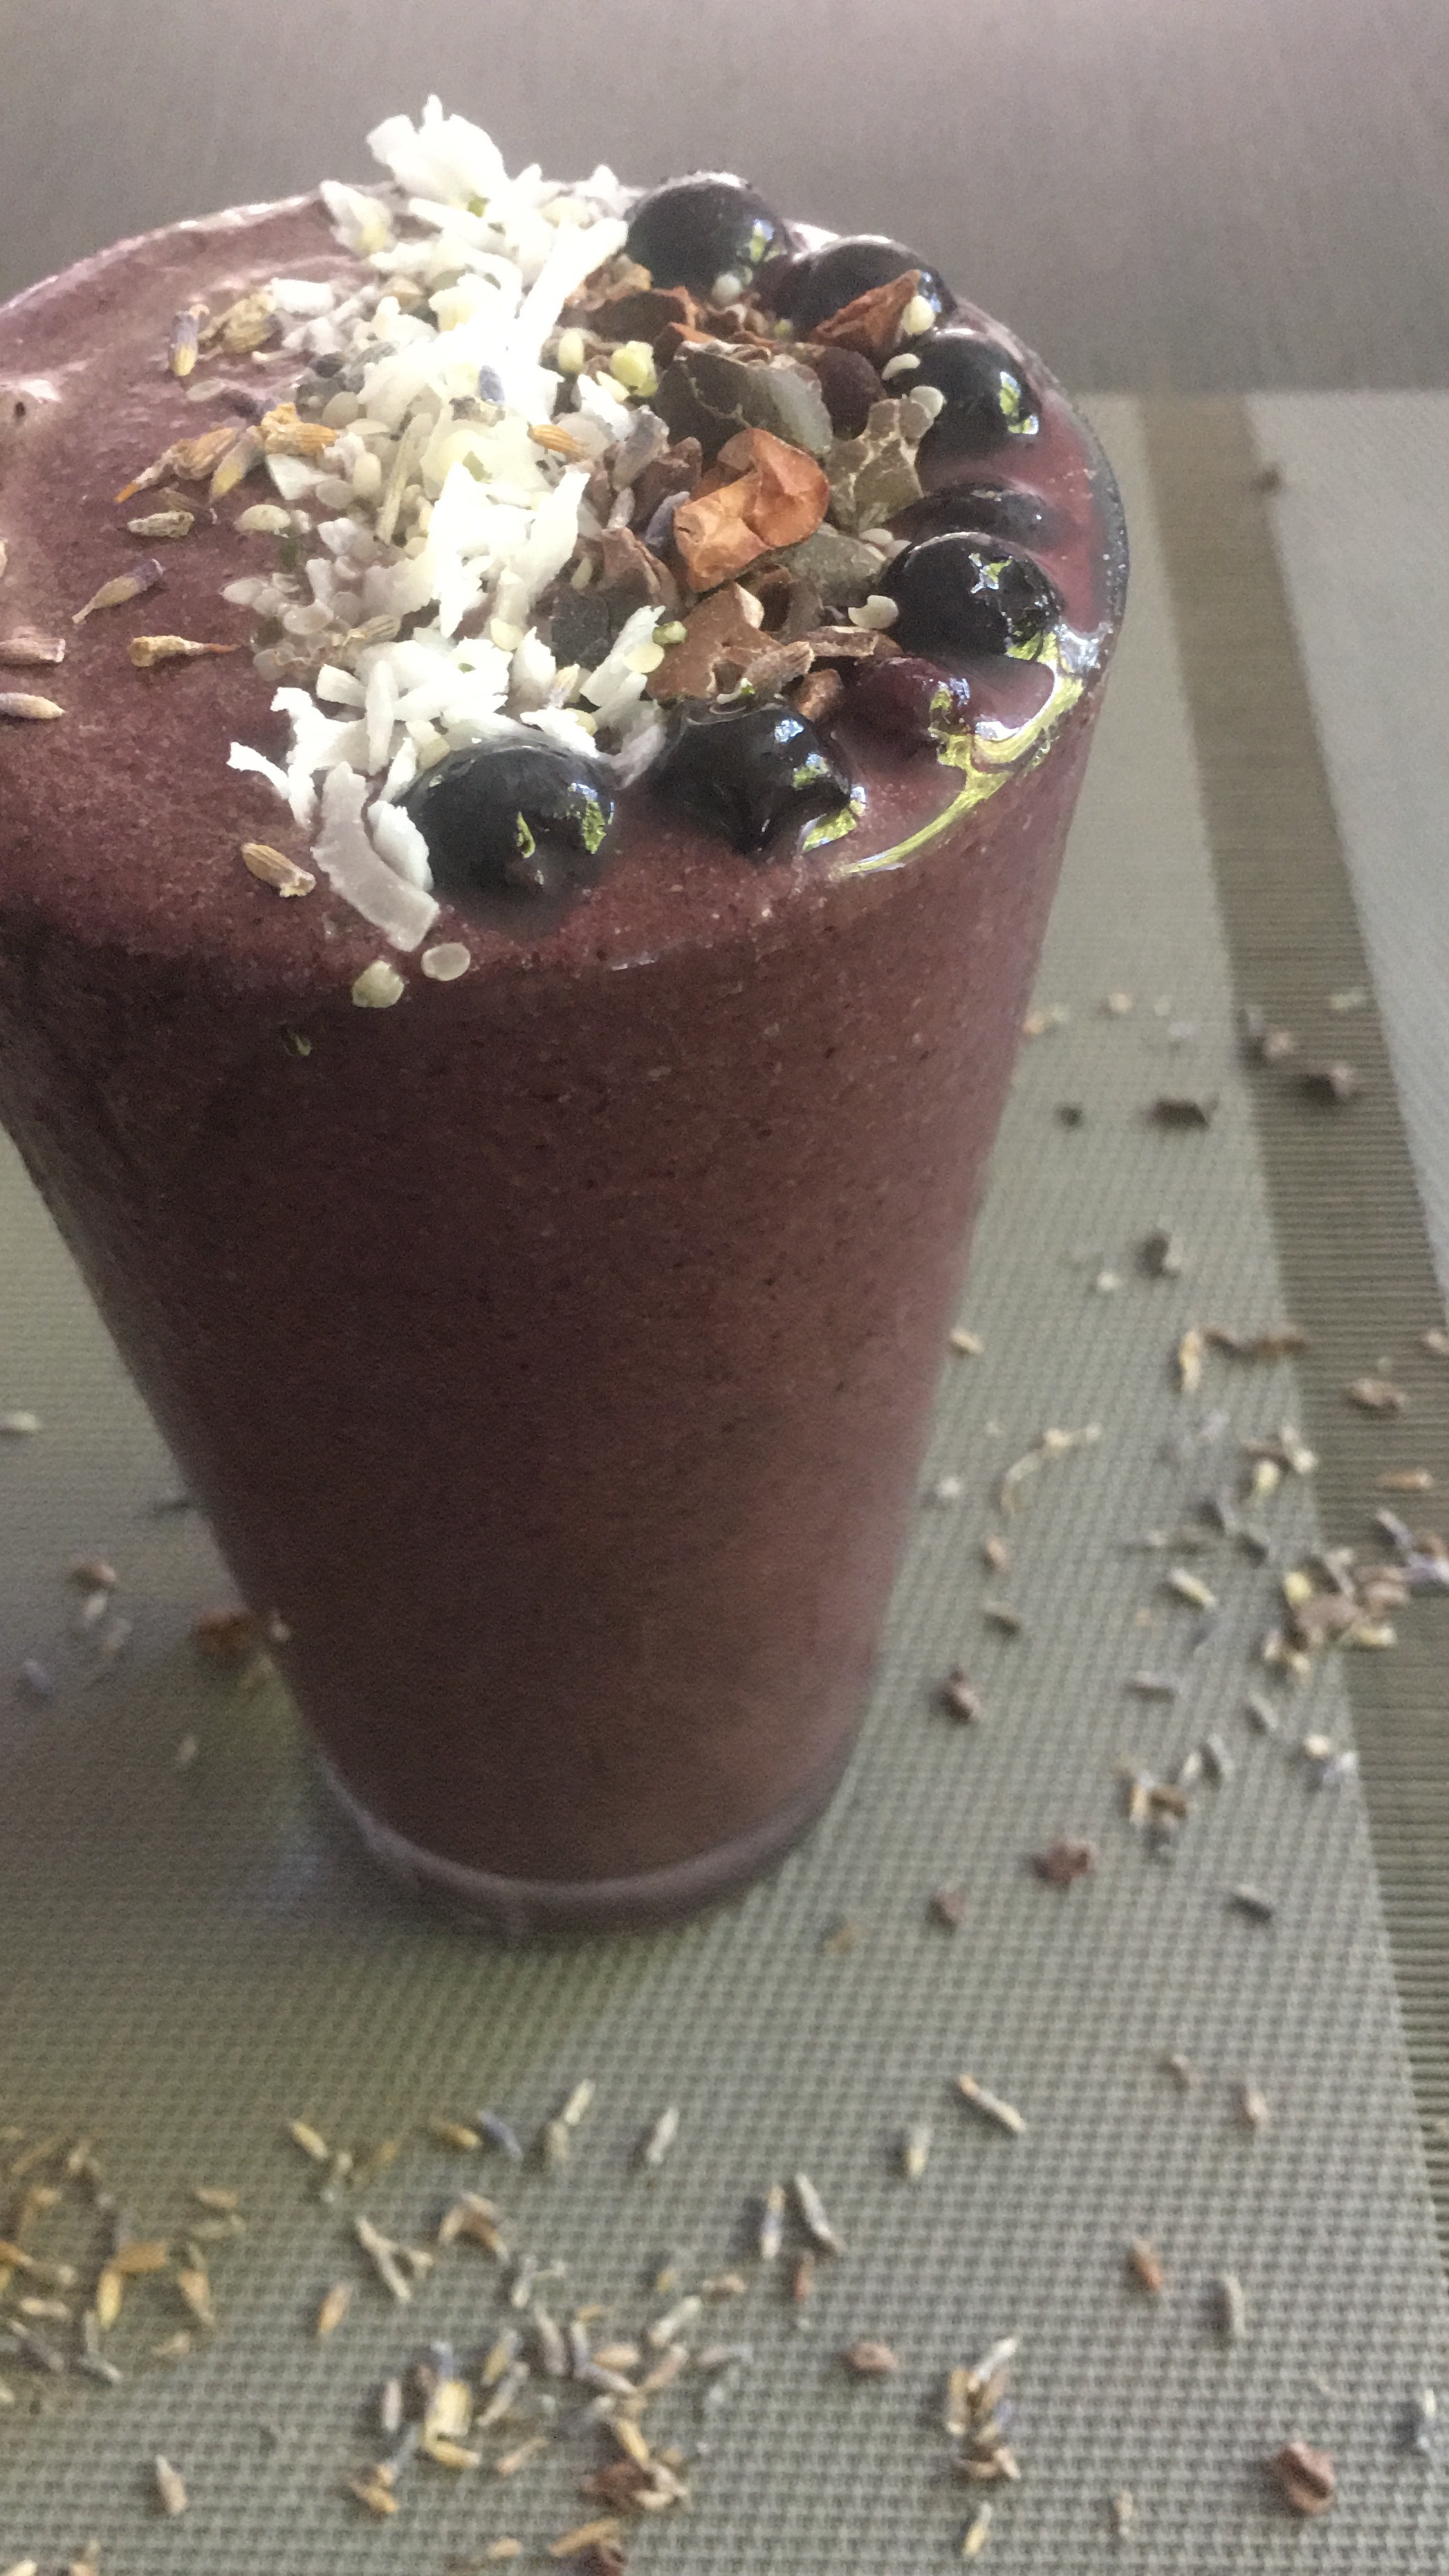 I truly think this is the best smoothie I've every free-hand created. Just inspired by that blueberry lavender milk!